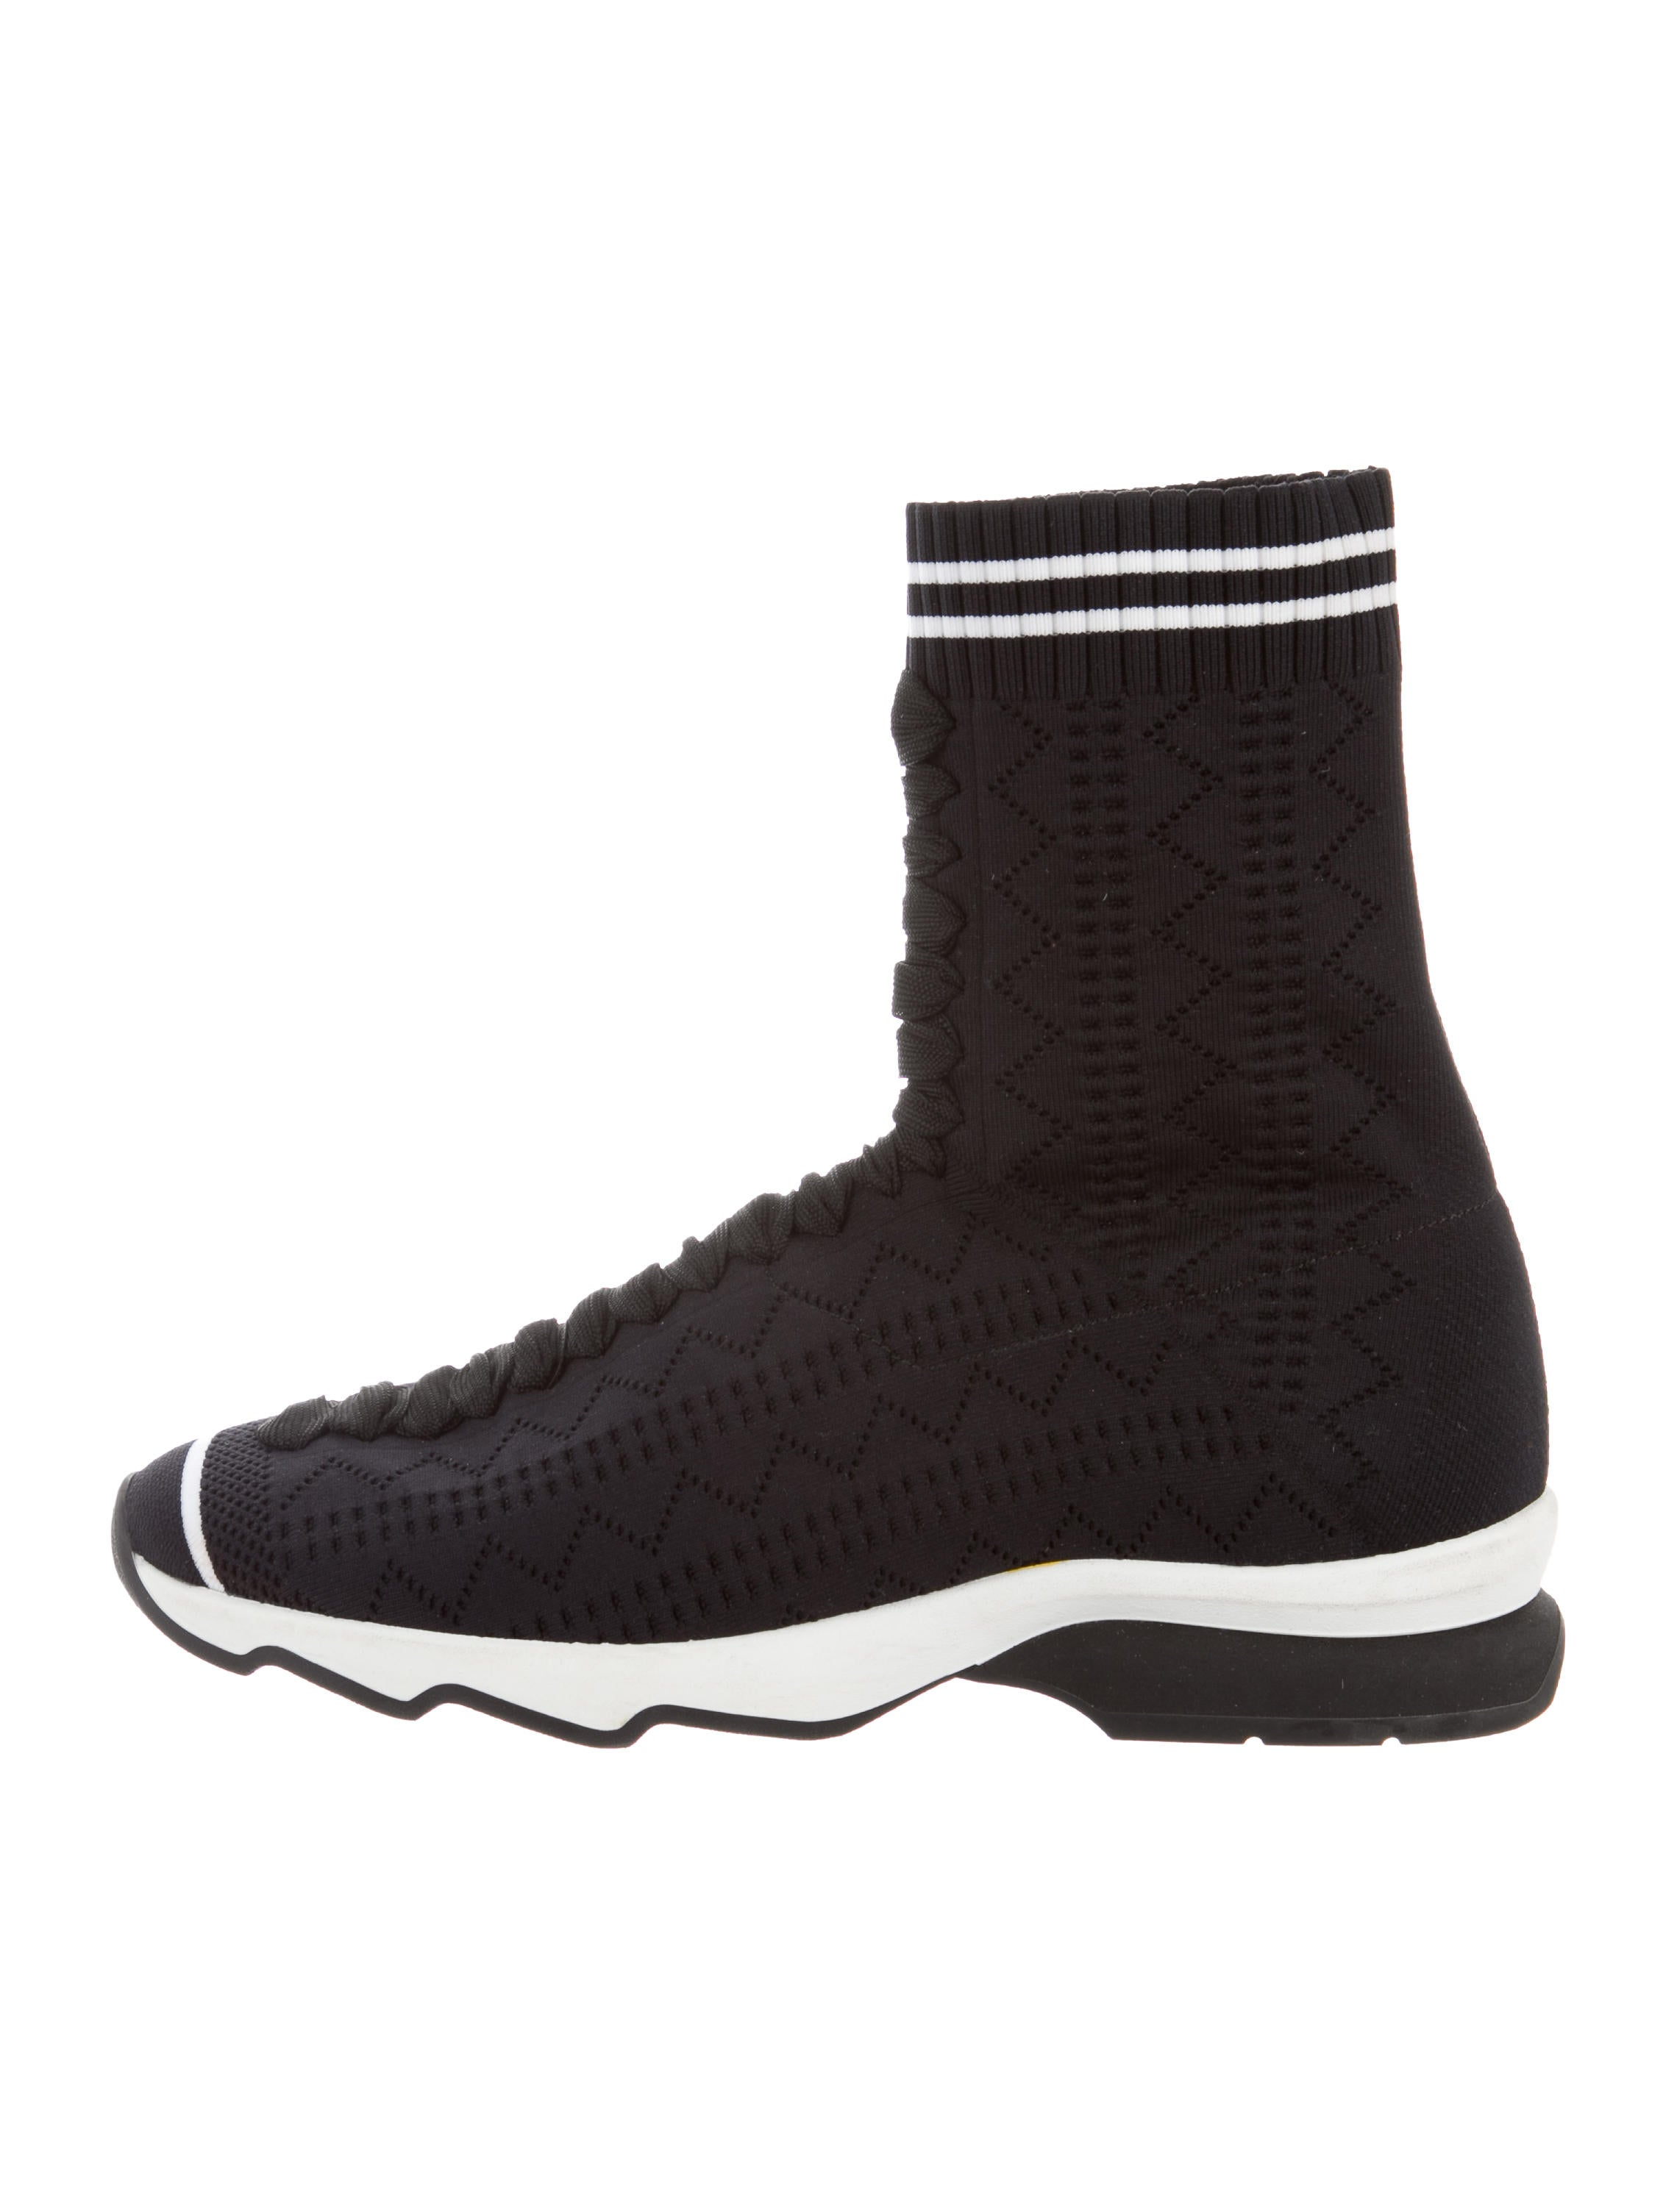 free shipping collections wiki online Fendi Perforated Sock Sneakers Red pre order eastbay quality free shipping outlet LLDtDel